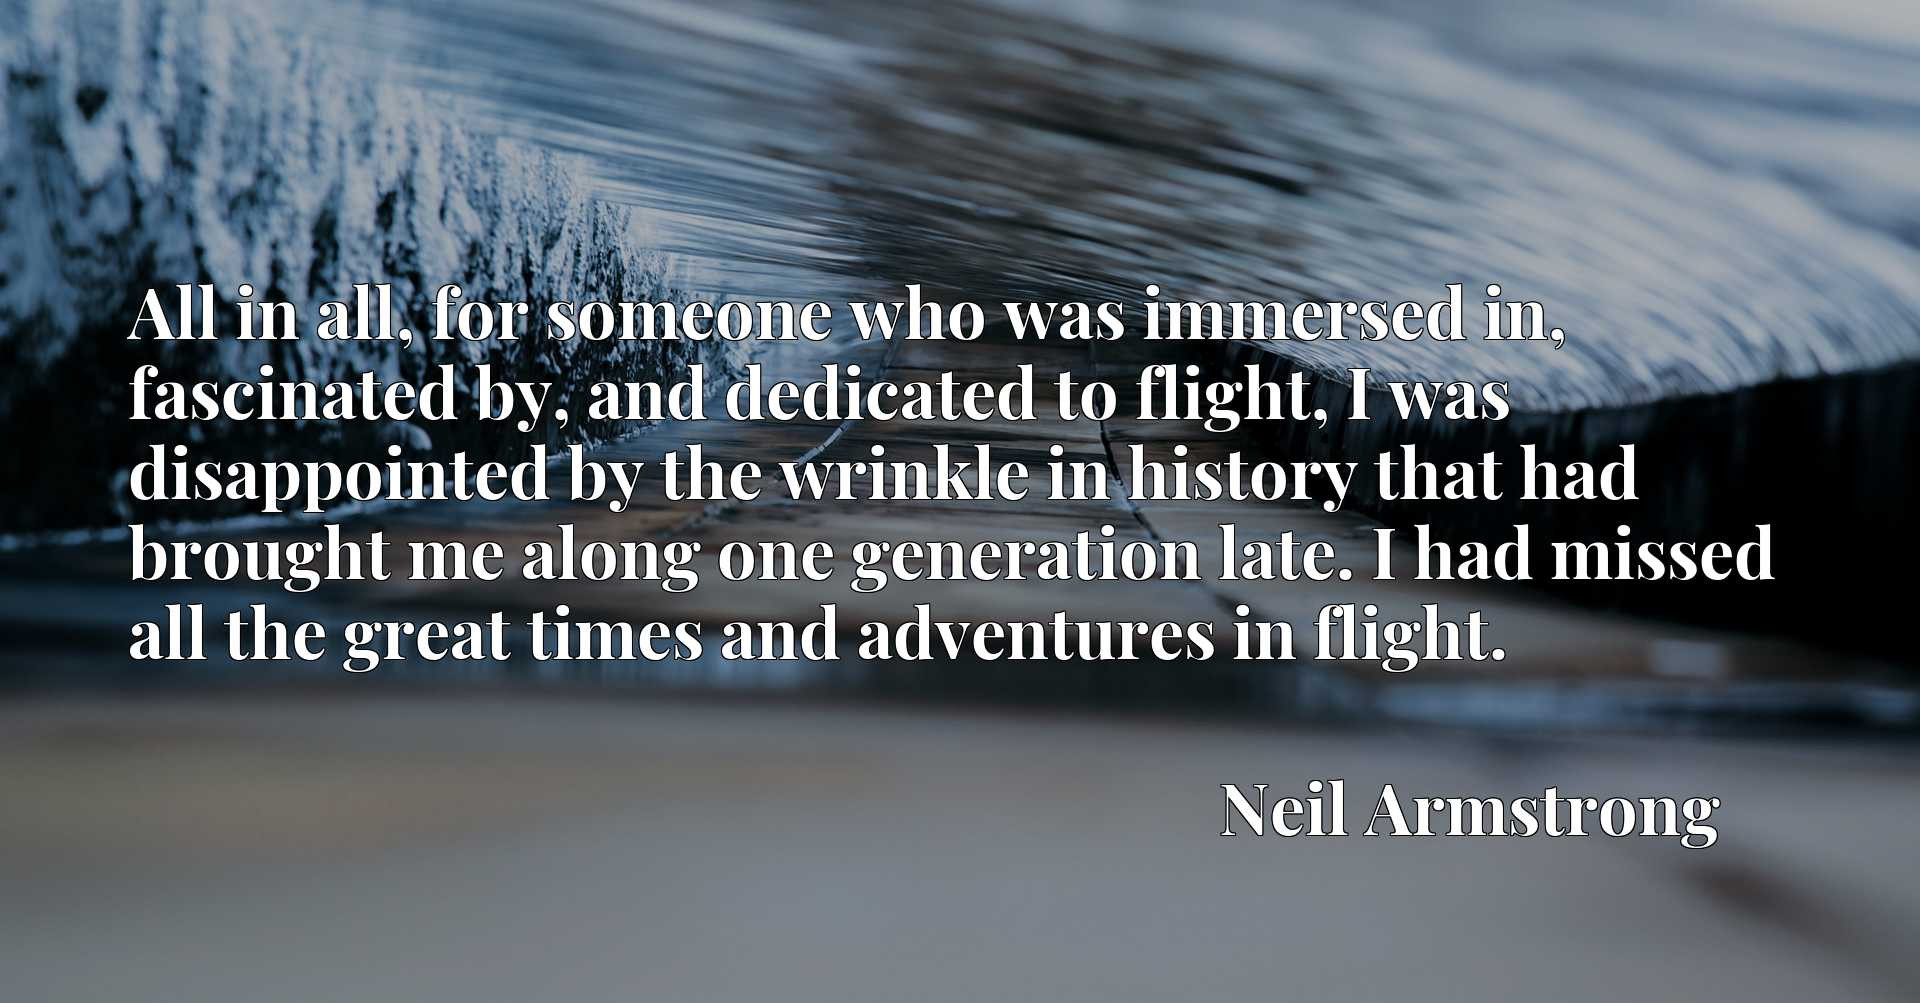 All in all, for someone who was immersed in, fascinated by, and dedicated to flight, I was disappointed by the wrinkle in history that had brought me along one generation late. I had missed all the great times and adventures in flight.